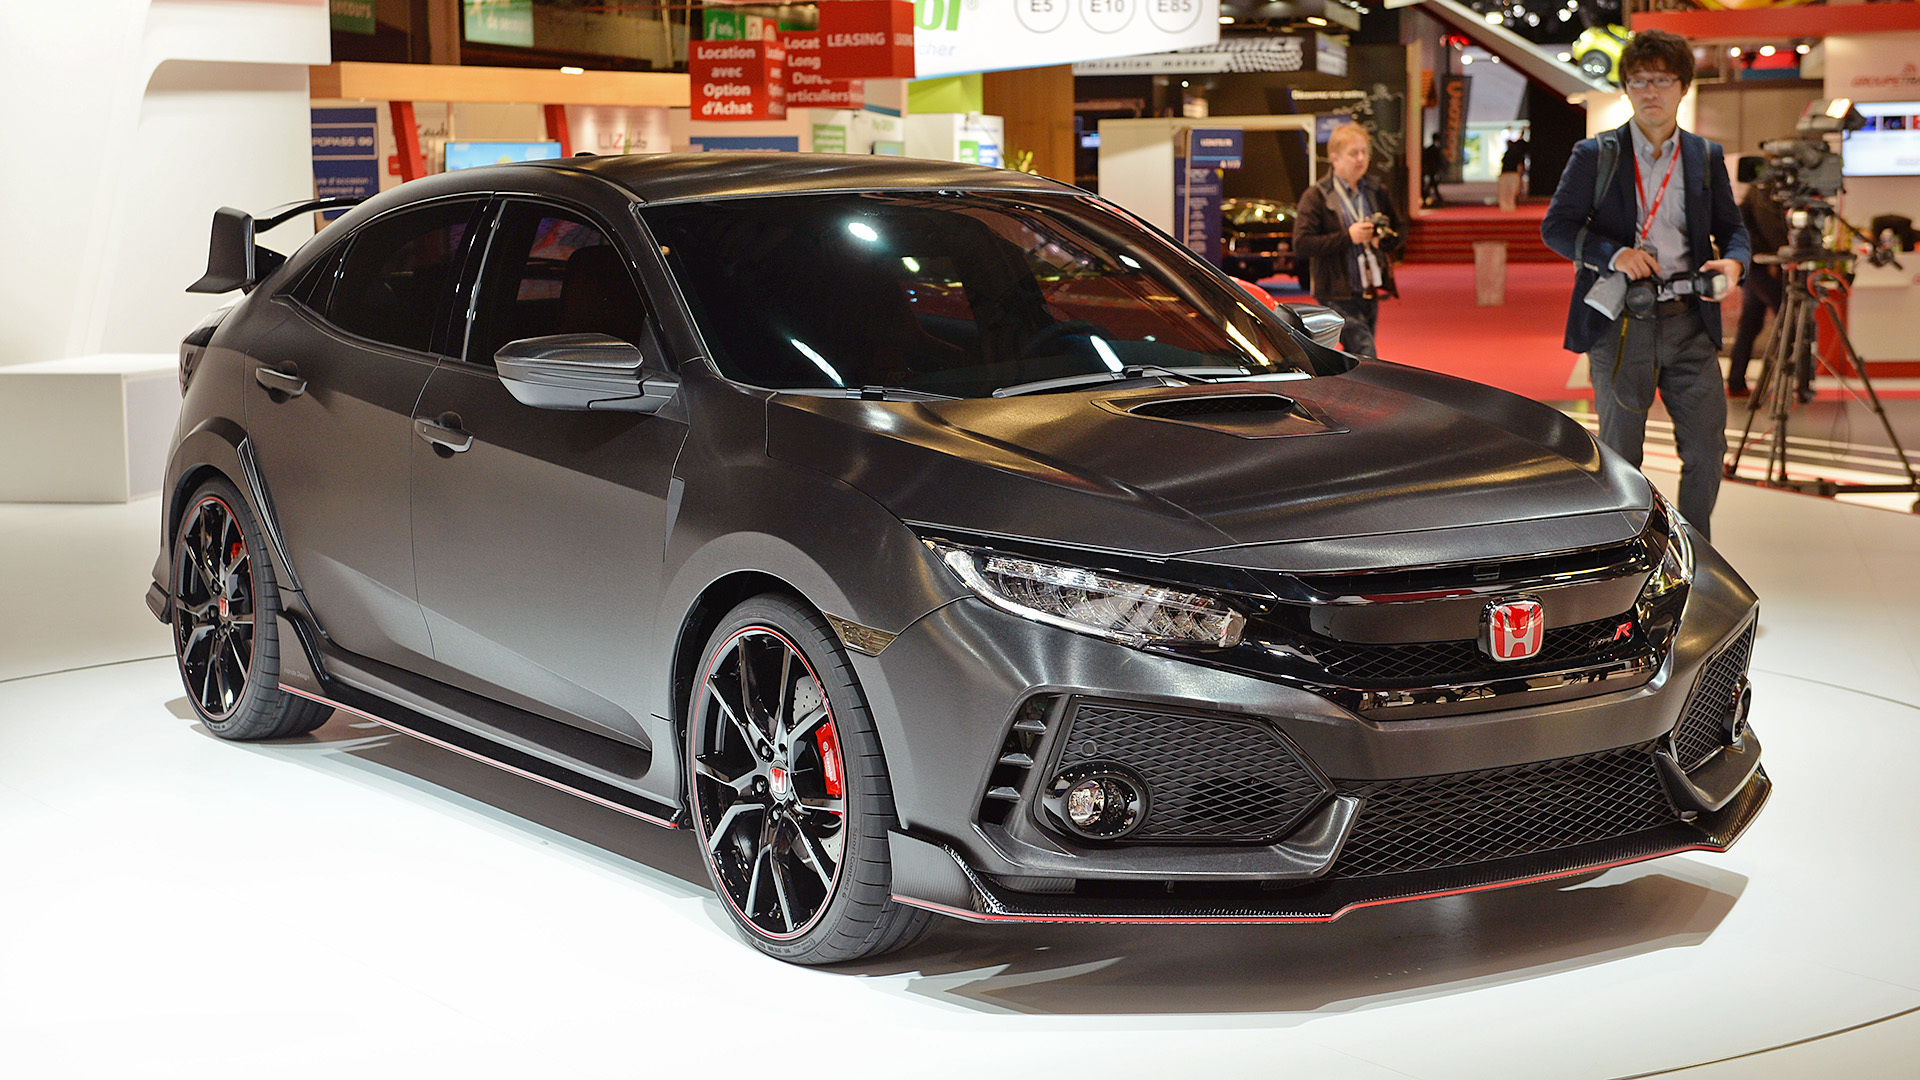 Honda civic type r concept paris 2016 0 for Buy honda civic type r